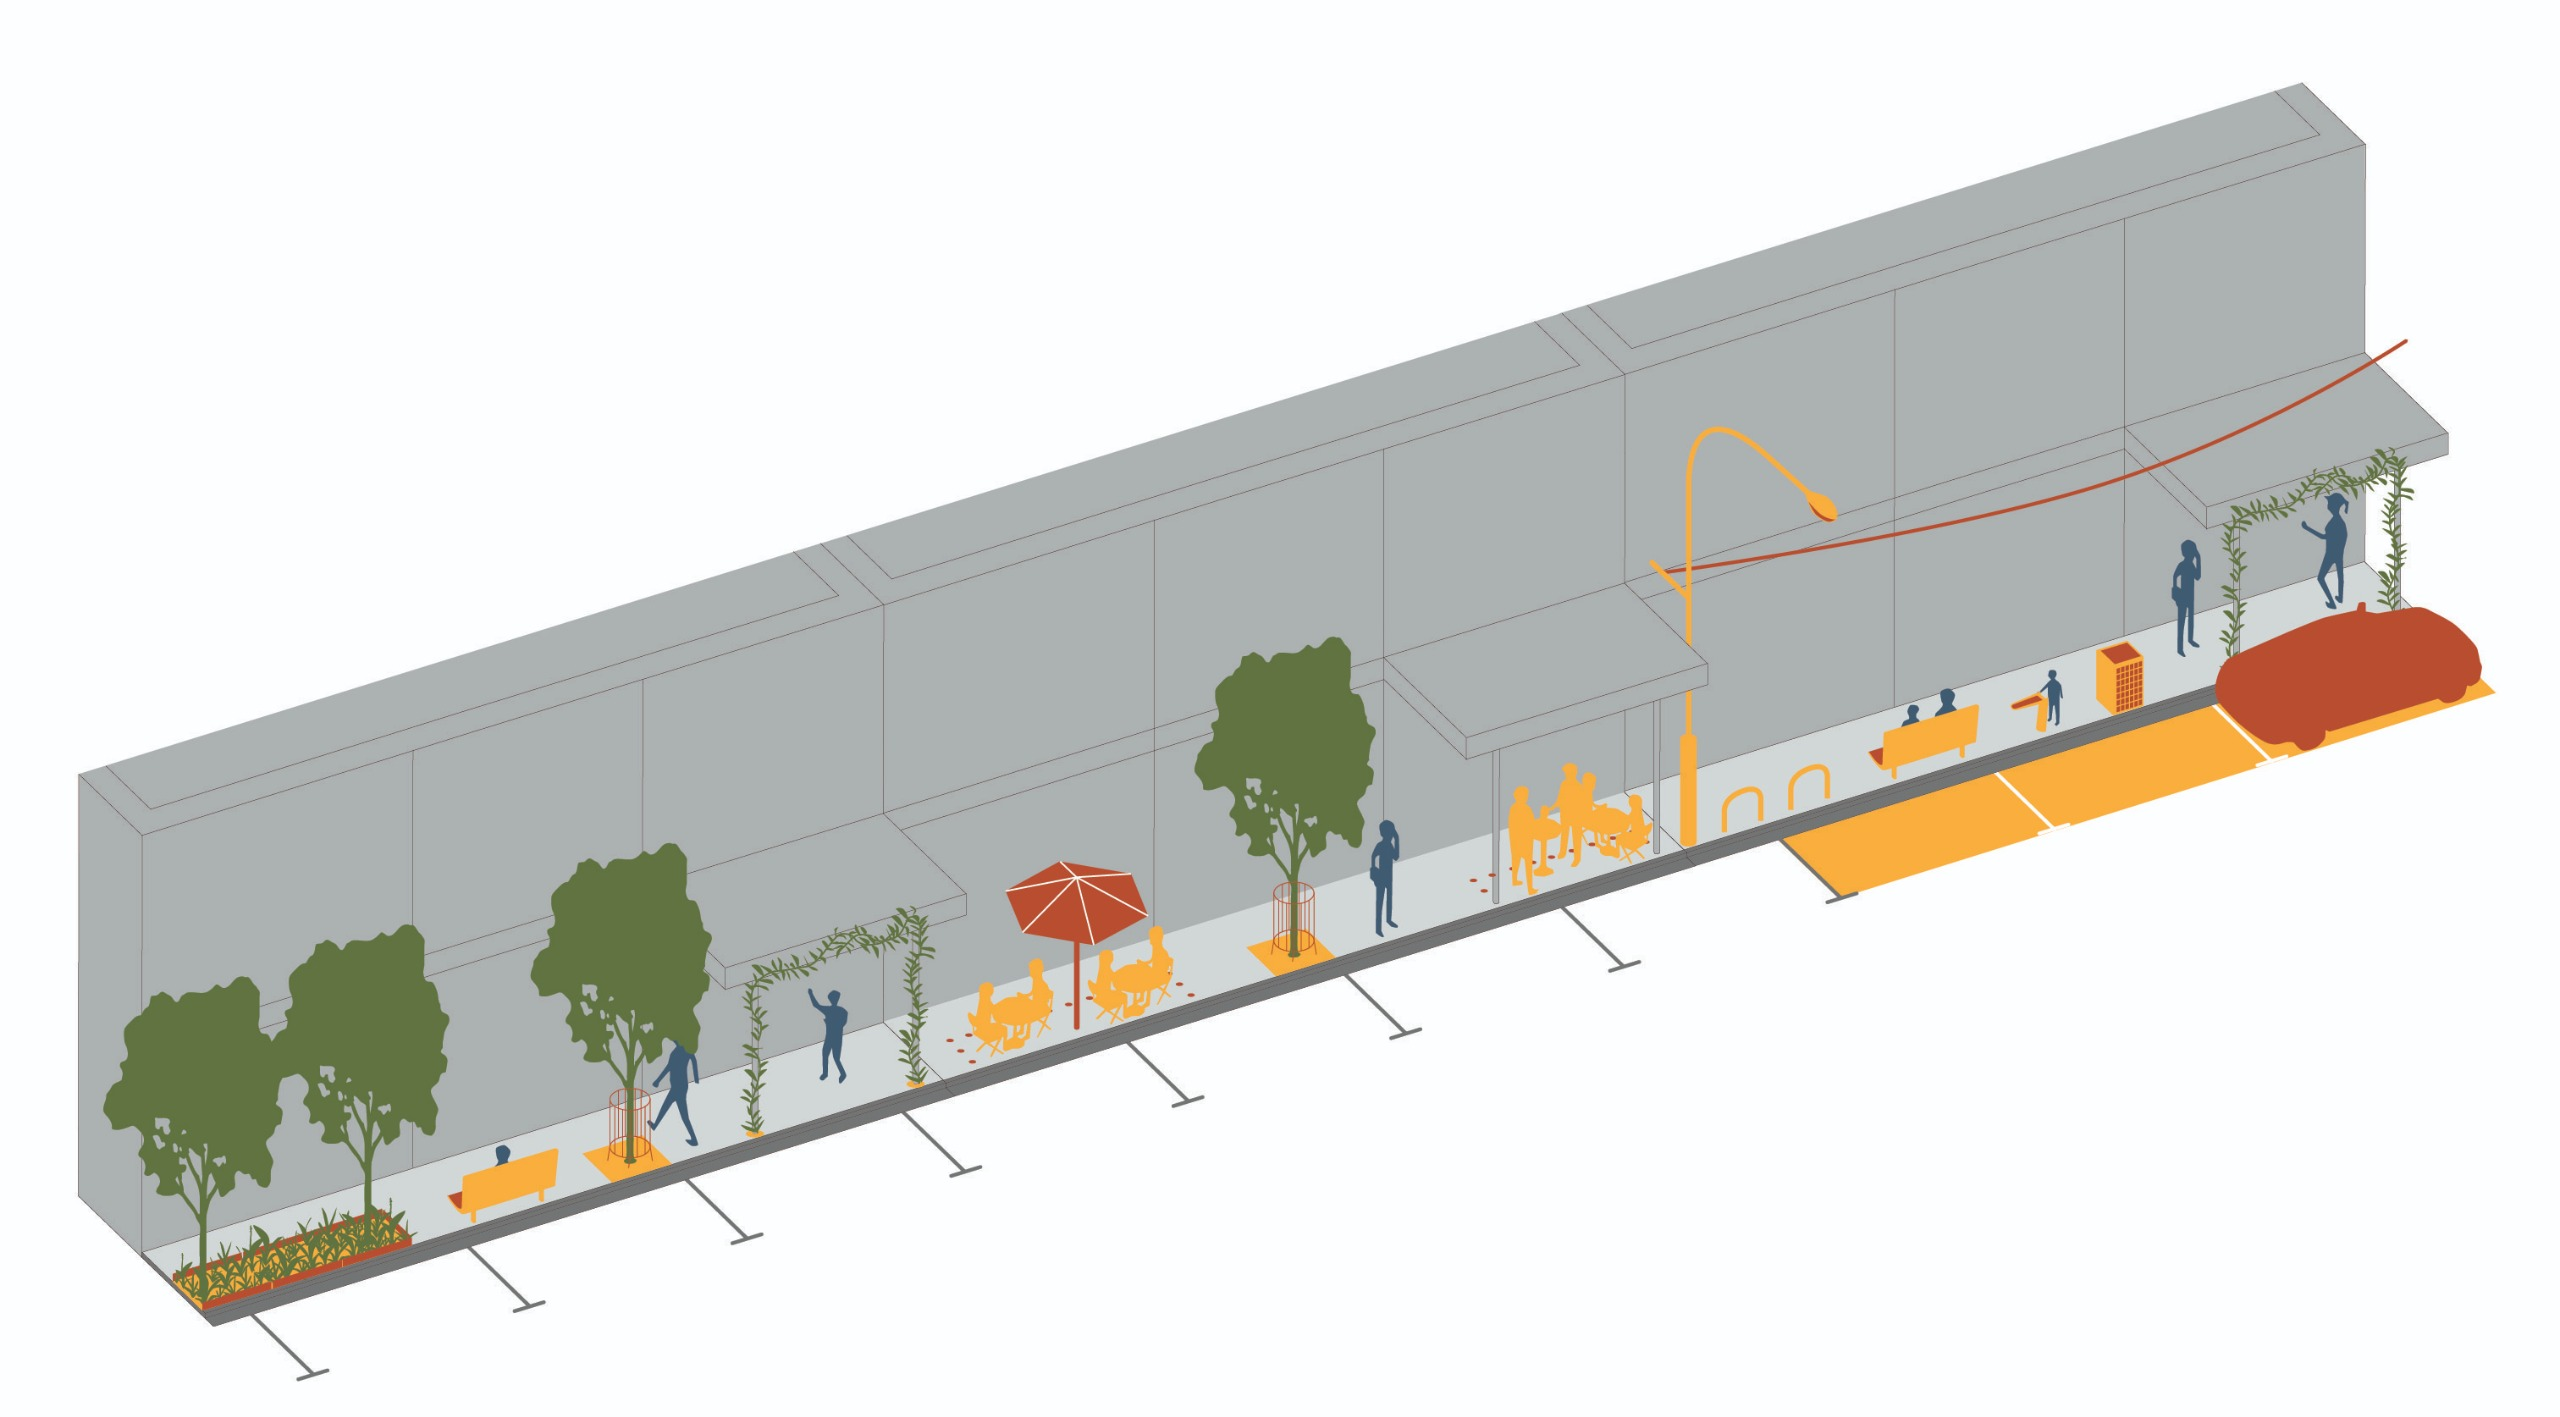 A mock up of a street, showing trees, pedestrians, bike hoops, outdoor dining, bins, awnings and car parks.